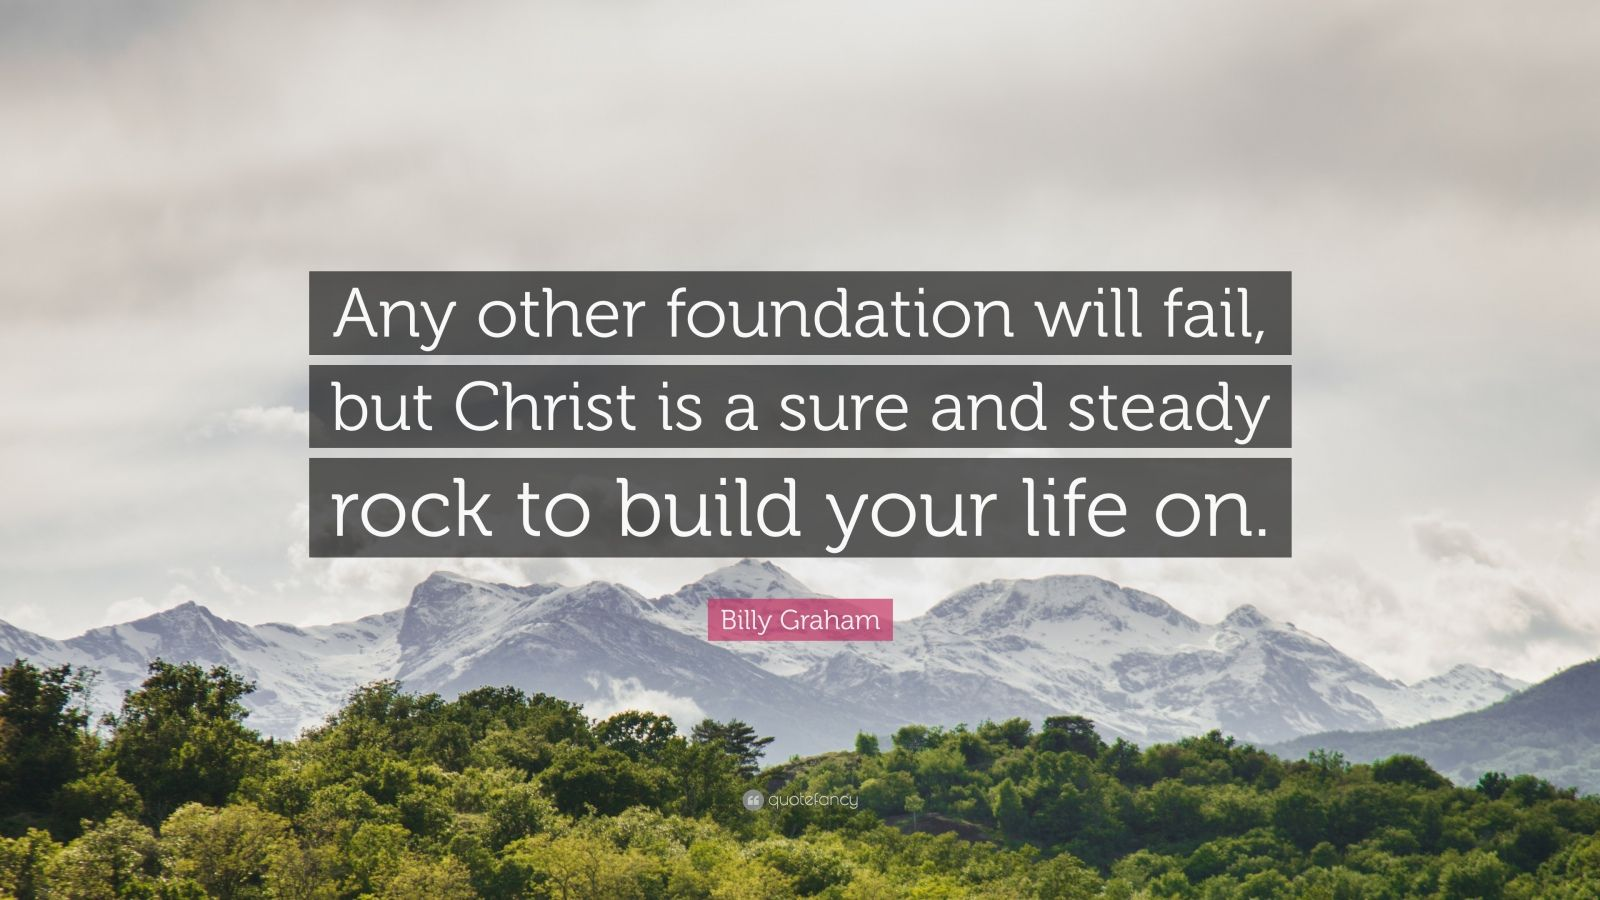 """Billy Graham Quote: """"Any other foundation will fail, but Christ is a sure and steady rock to build your life on."""""""